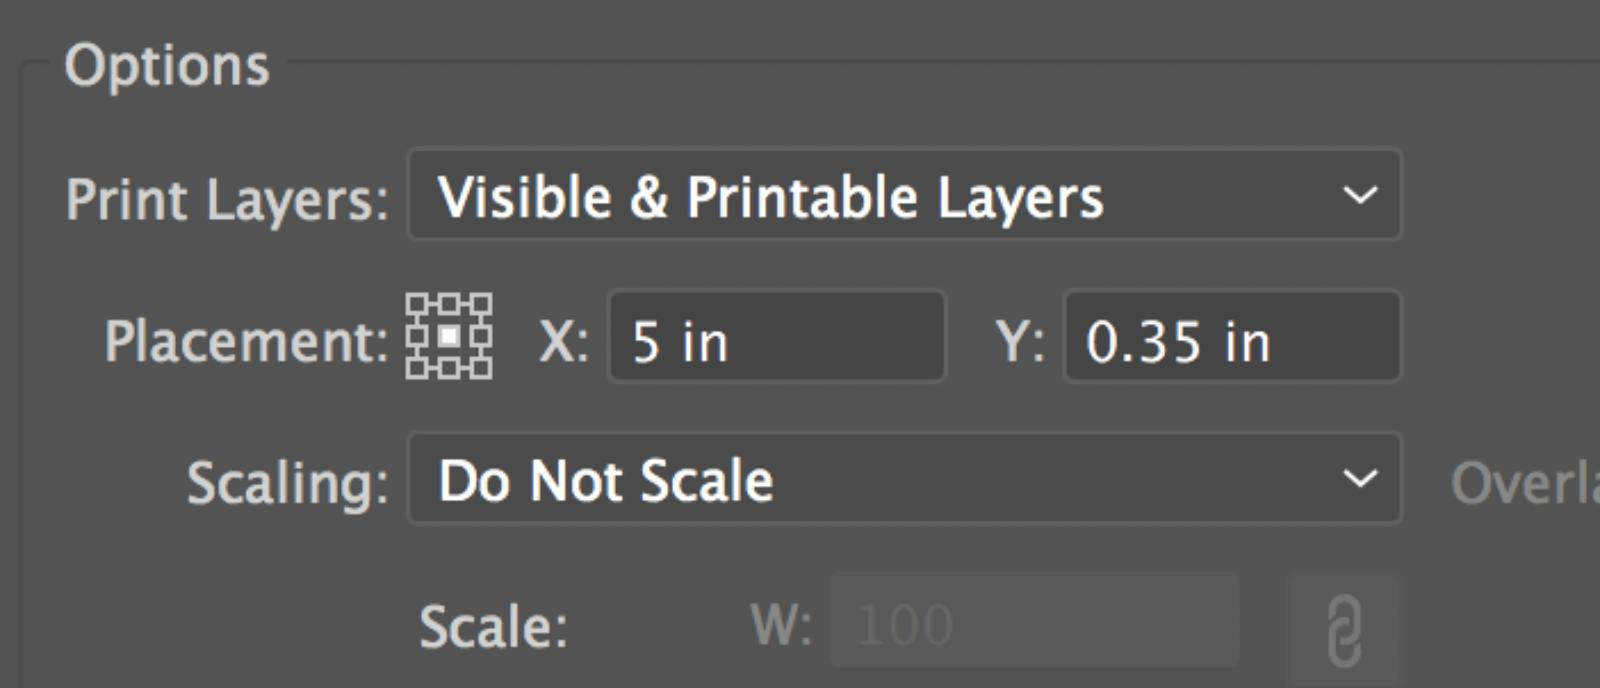 Do Not Scale